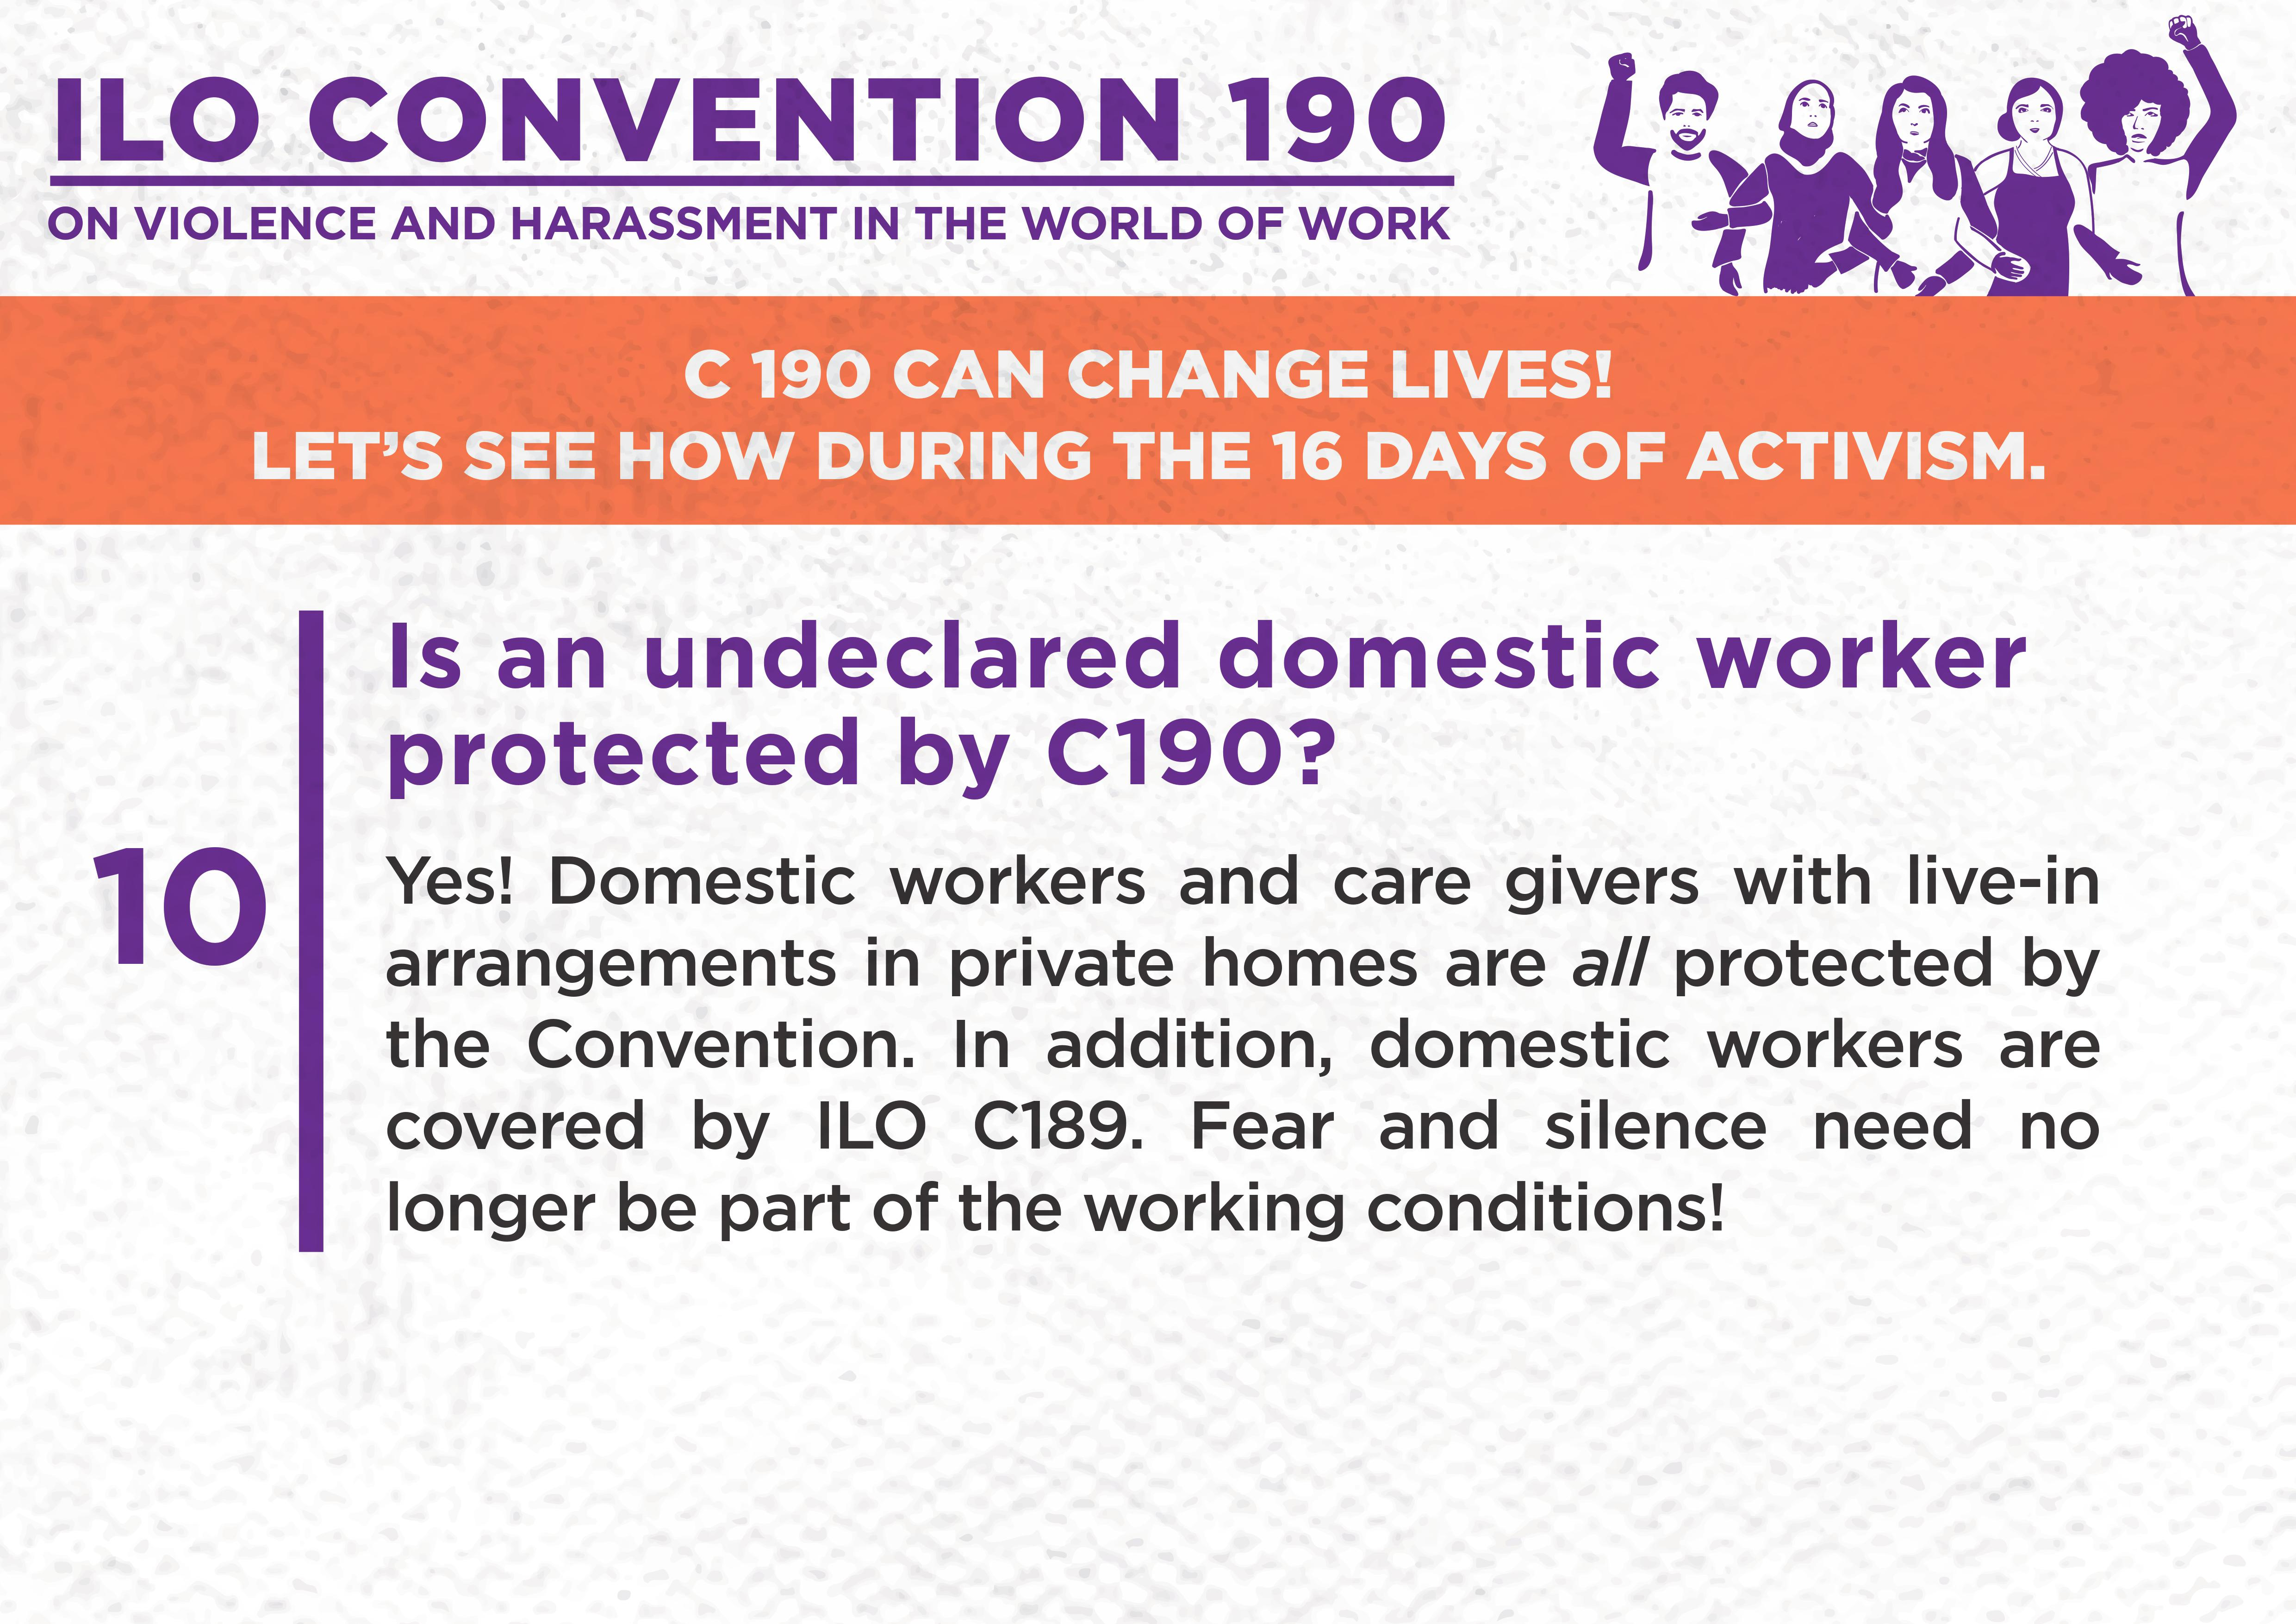 10. Is an undeclared domestic worker protected by C190?